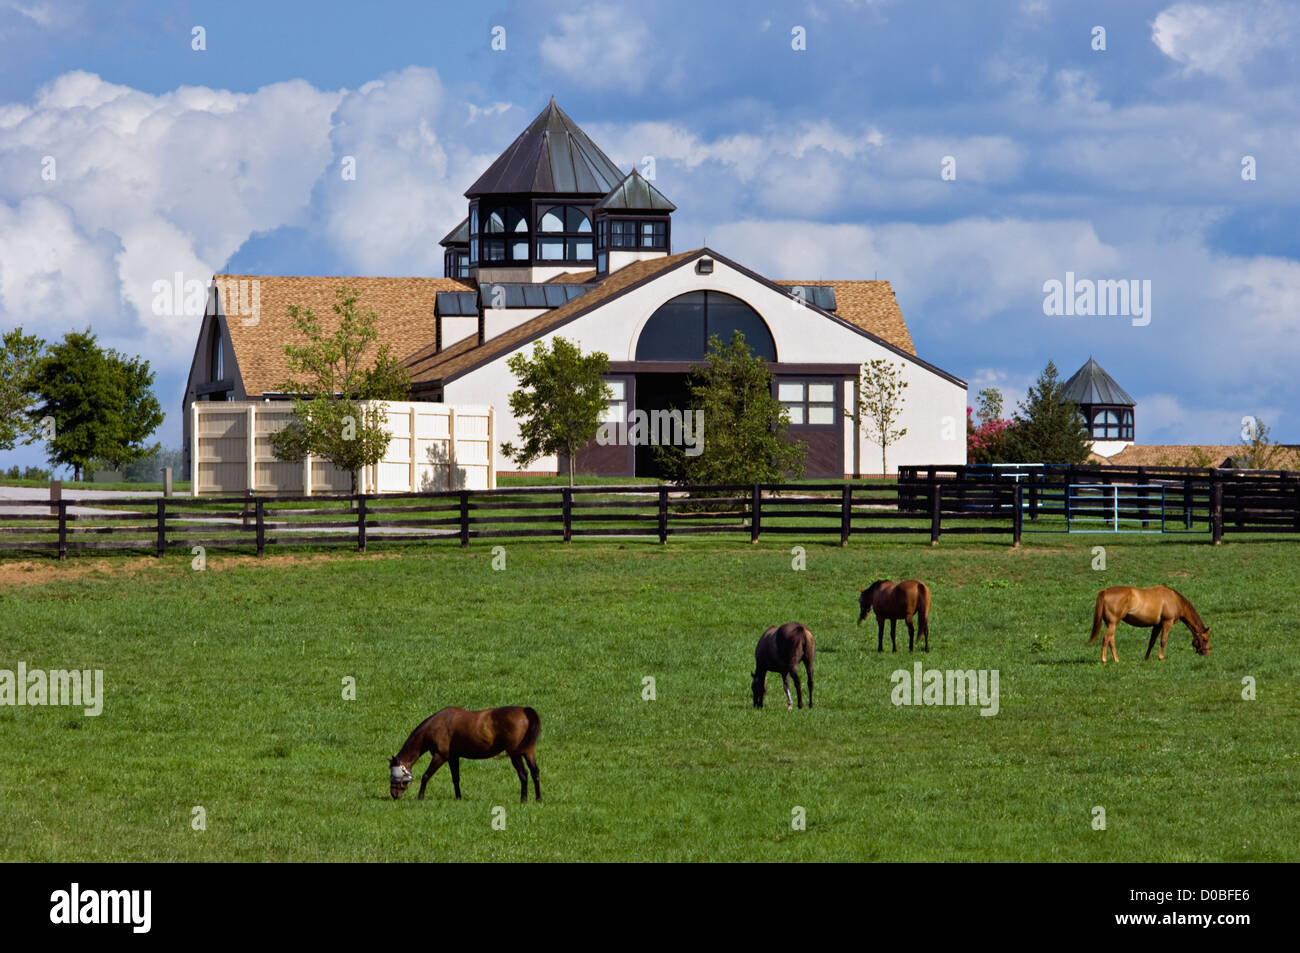 Thoroughbreds Grazing in Paddock at Gainsborough Farm in Woodford County, Kentucky - Stock Image